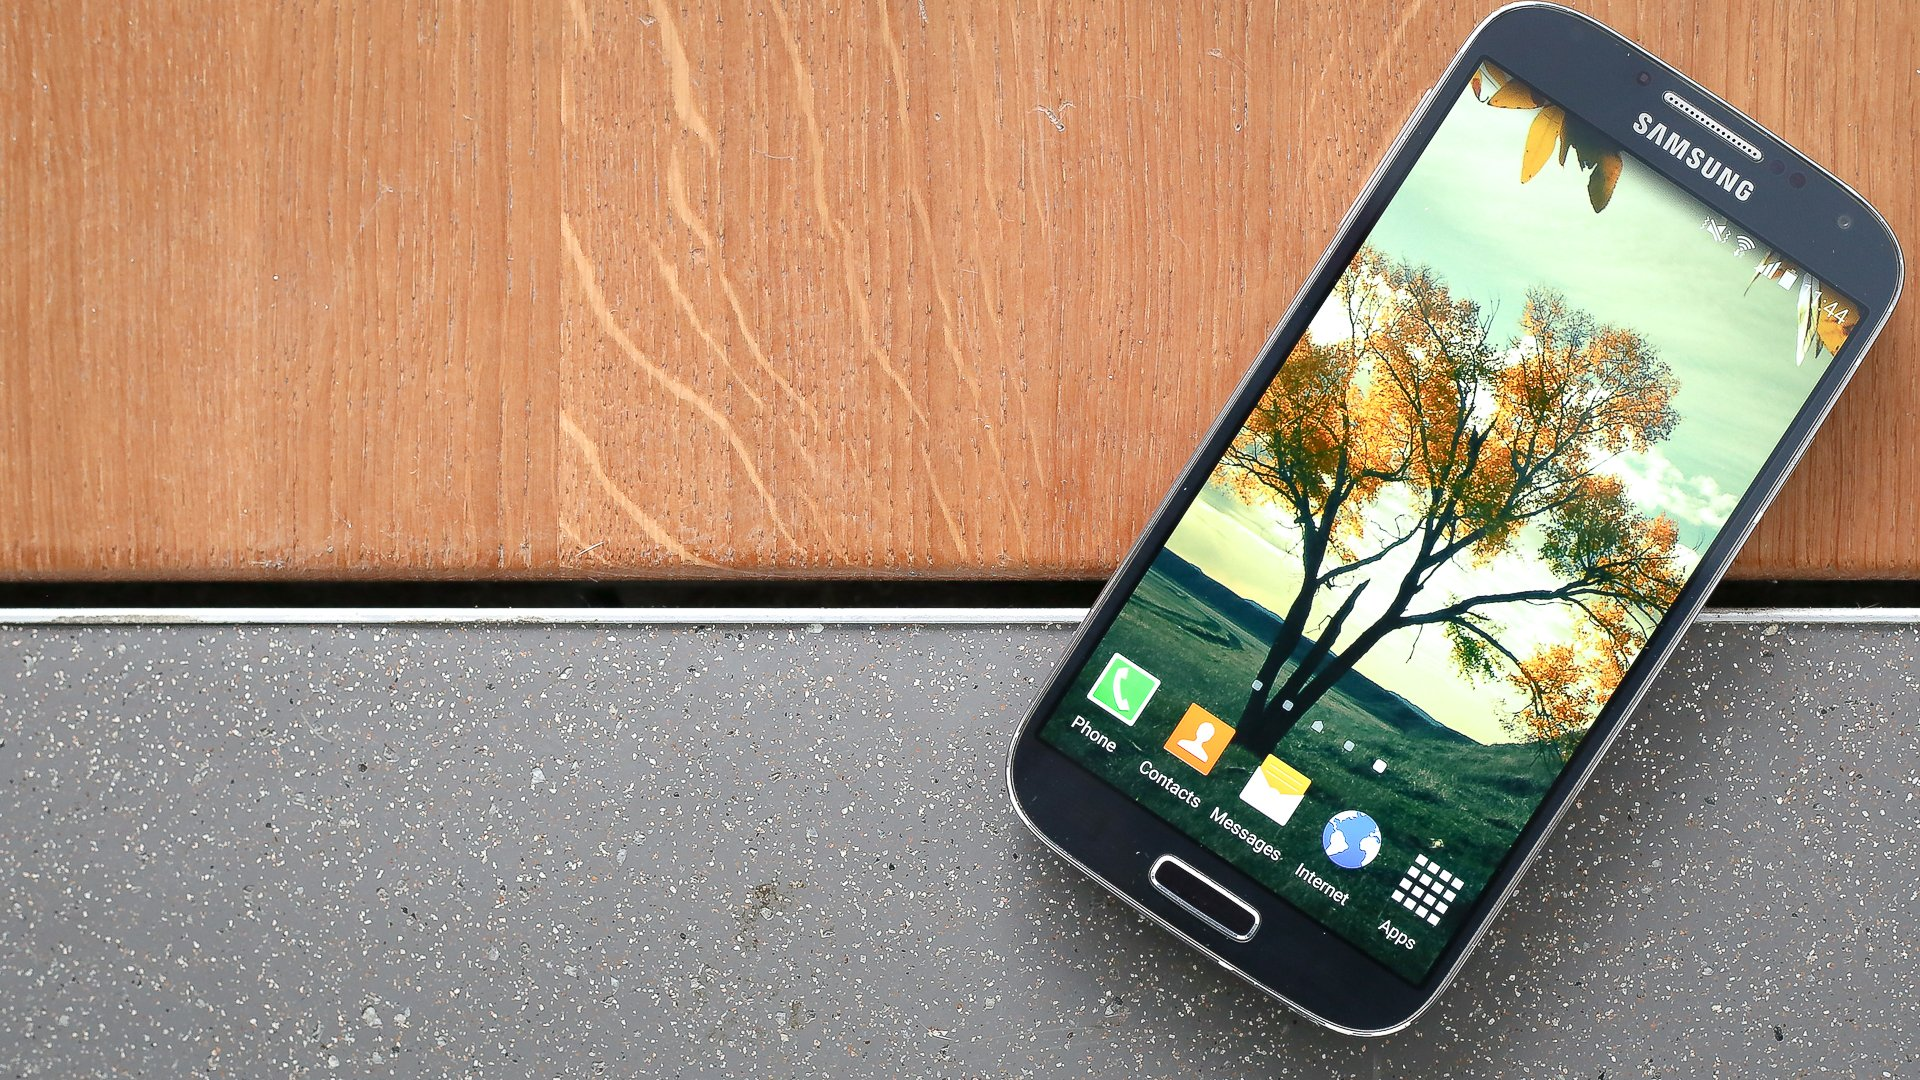 4 reasons not to upgrade your Samsung Galaxy S4 | AndroidPIT